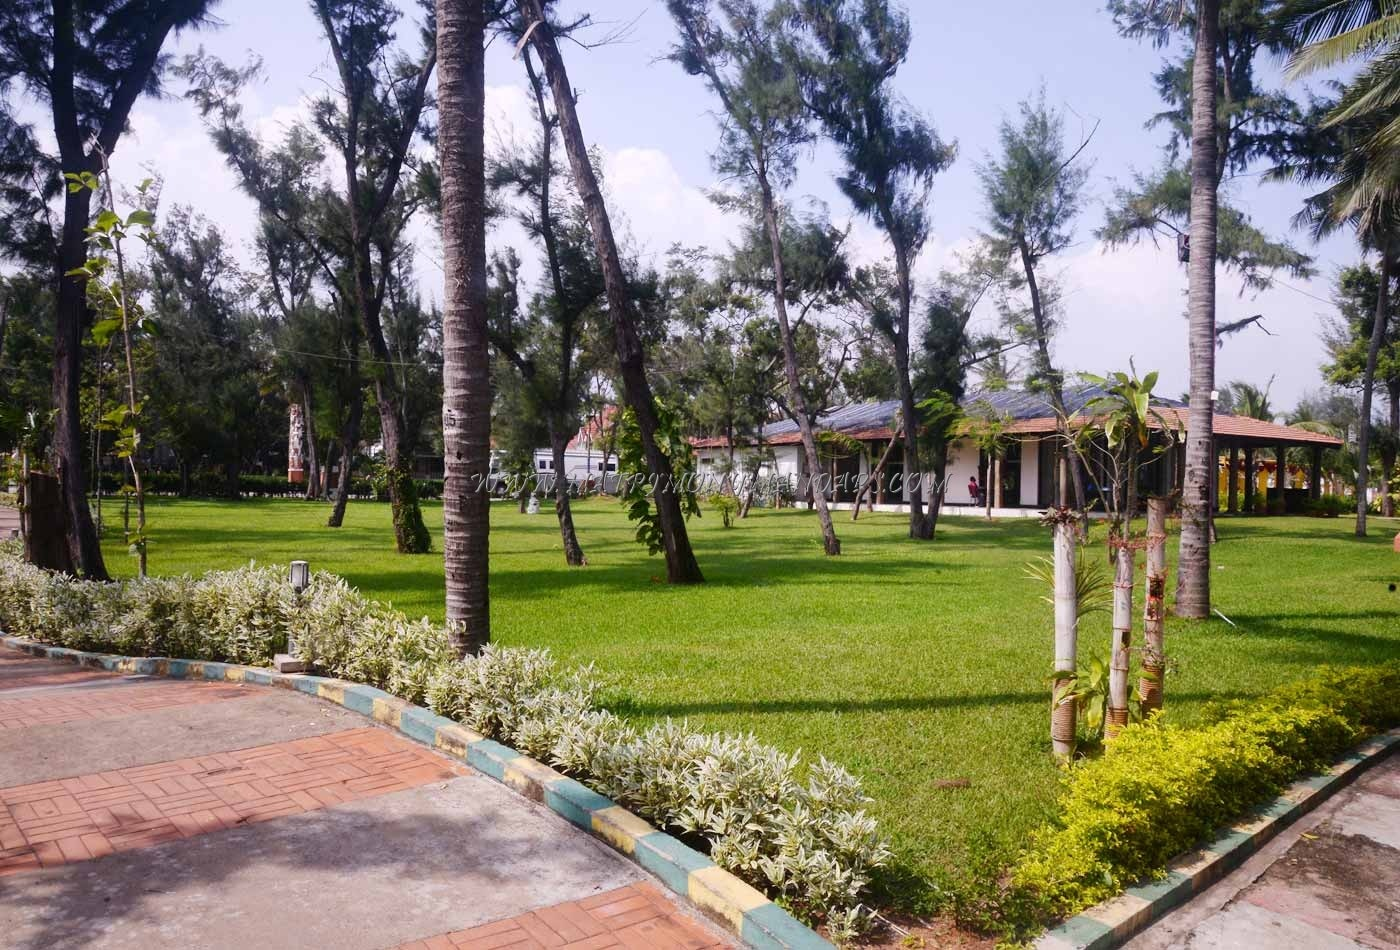 Find the availability of the VGP Golden Beh Resort - Jade Garden in ECR, Chennai and avail special offers